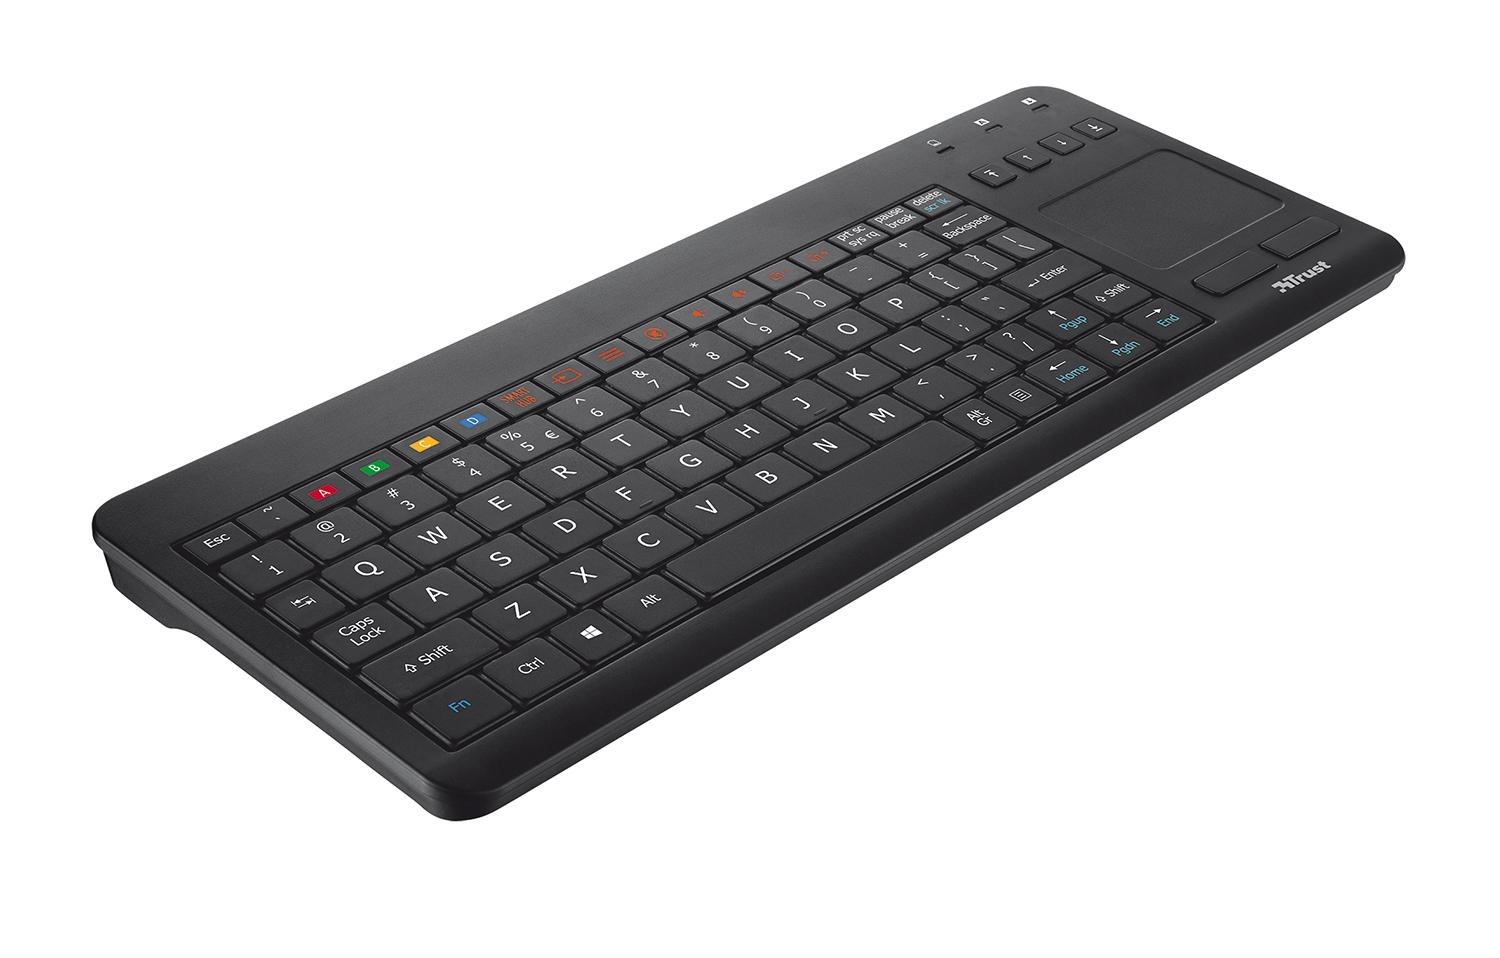 trust sento wireless keyboard with touchpad for all samsung tvs uk layout. Black Bedroom Furniture Sets. Home Design Ideas